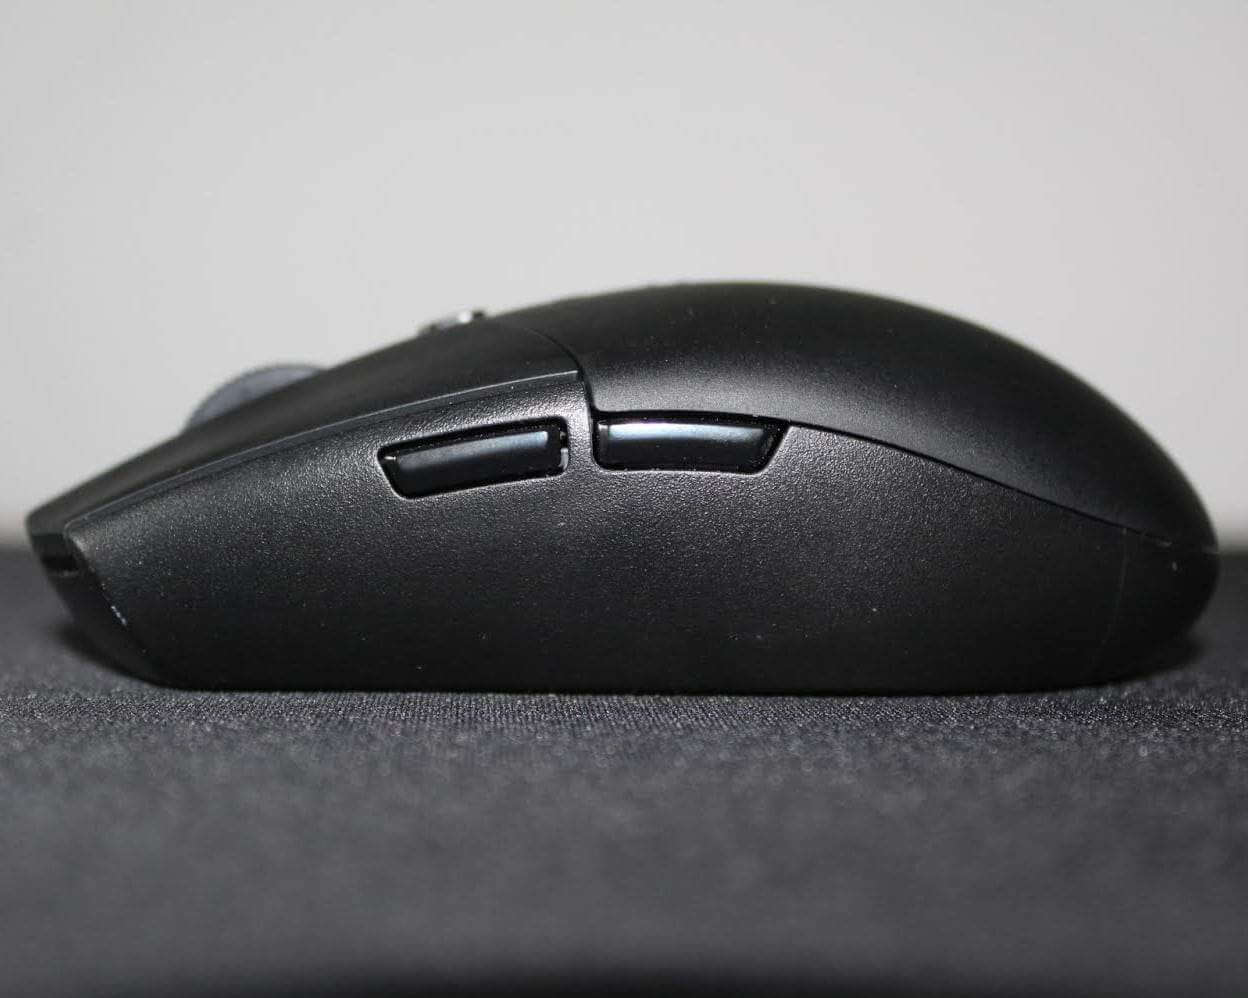 Logitech G305 Review Sideview